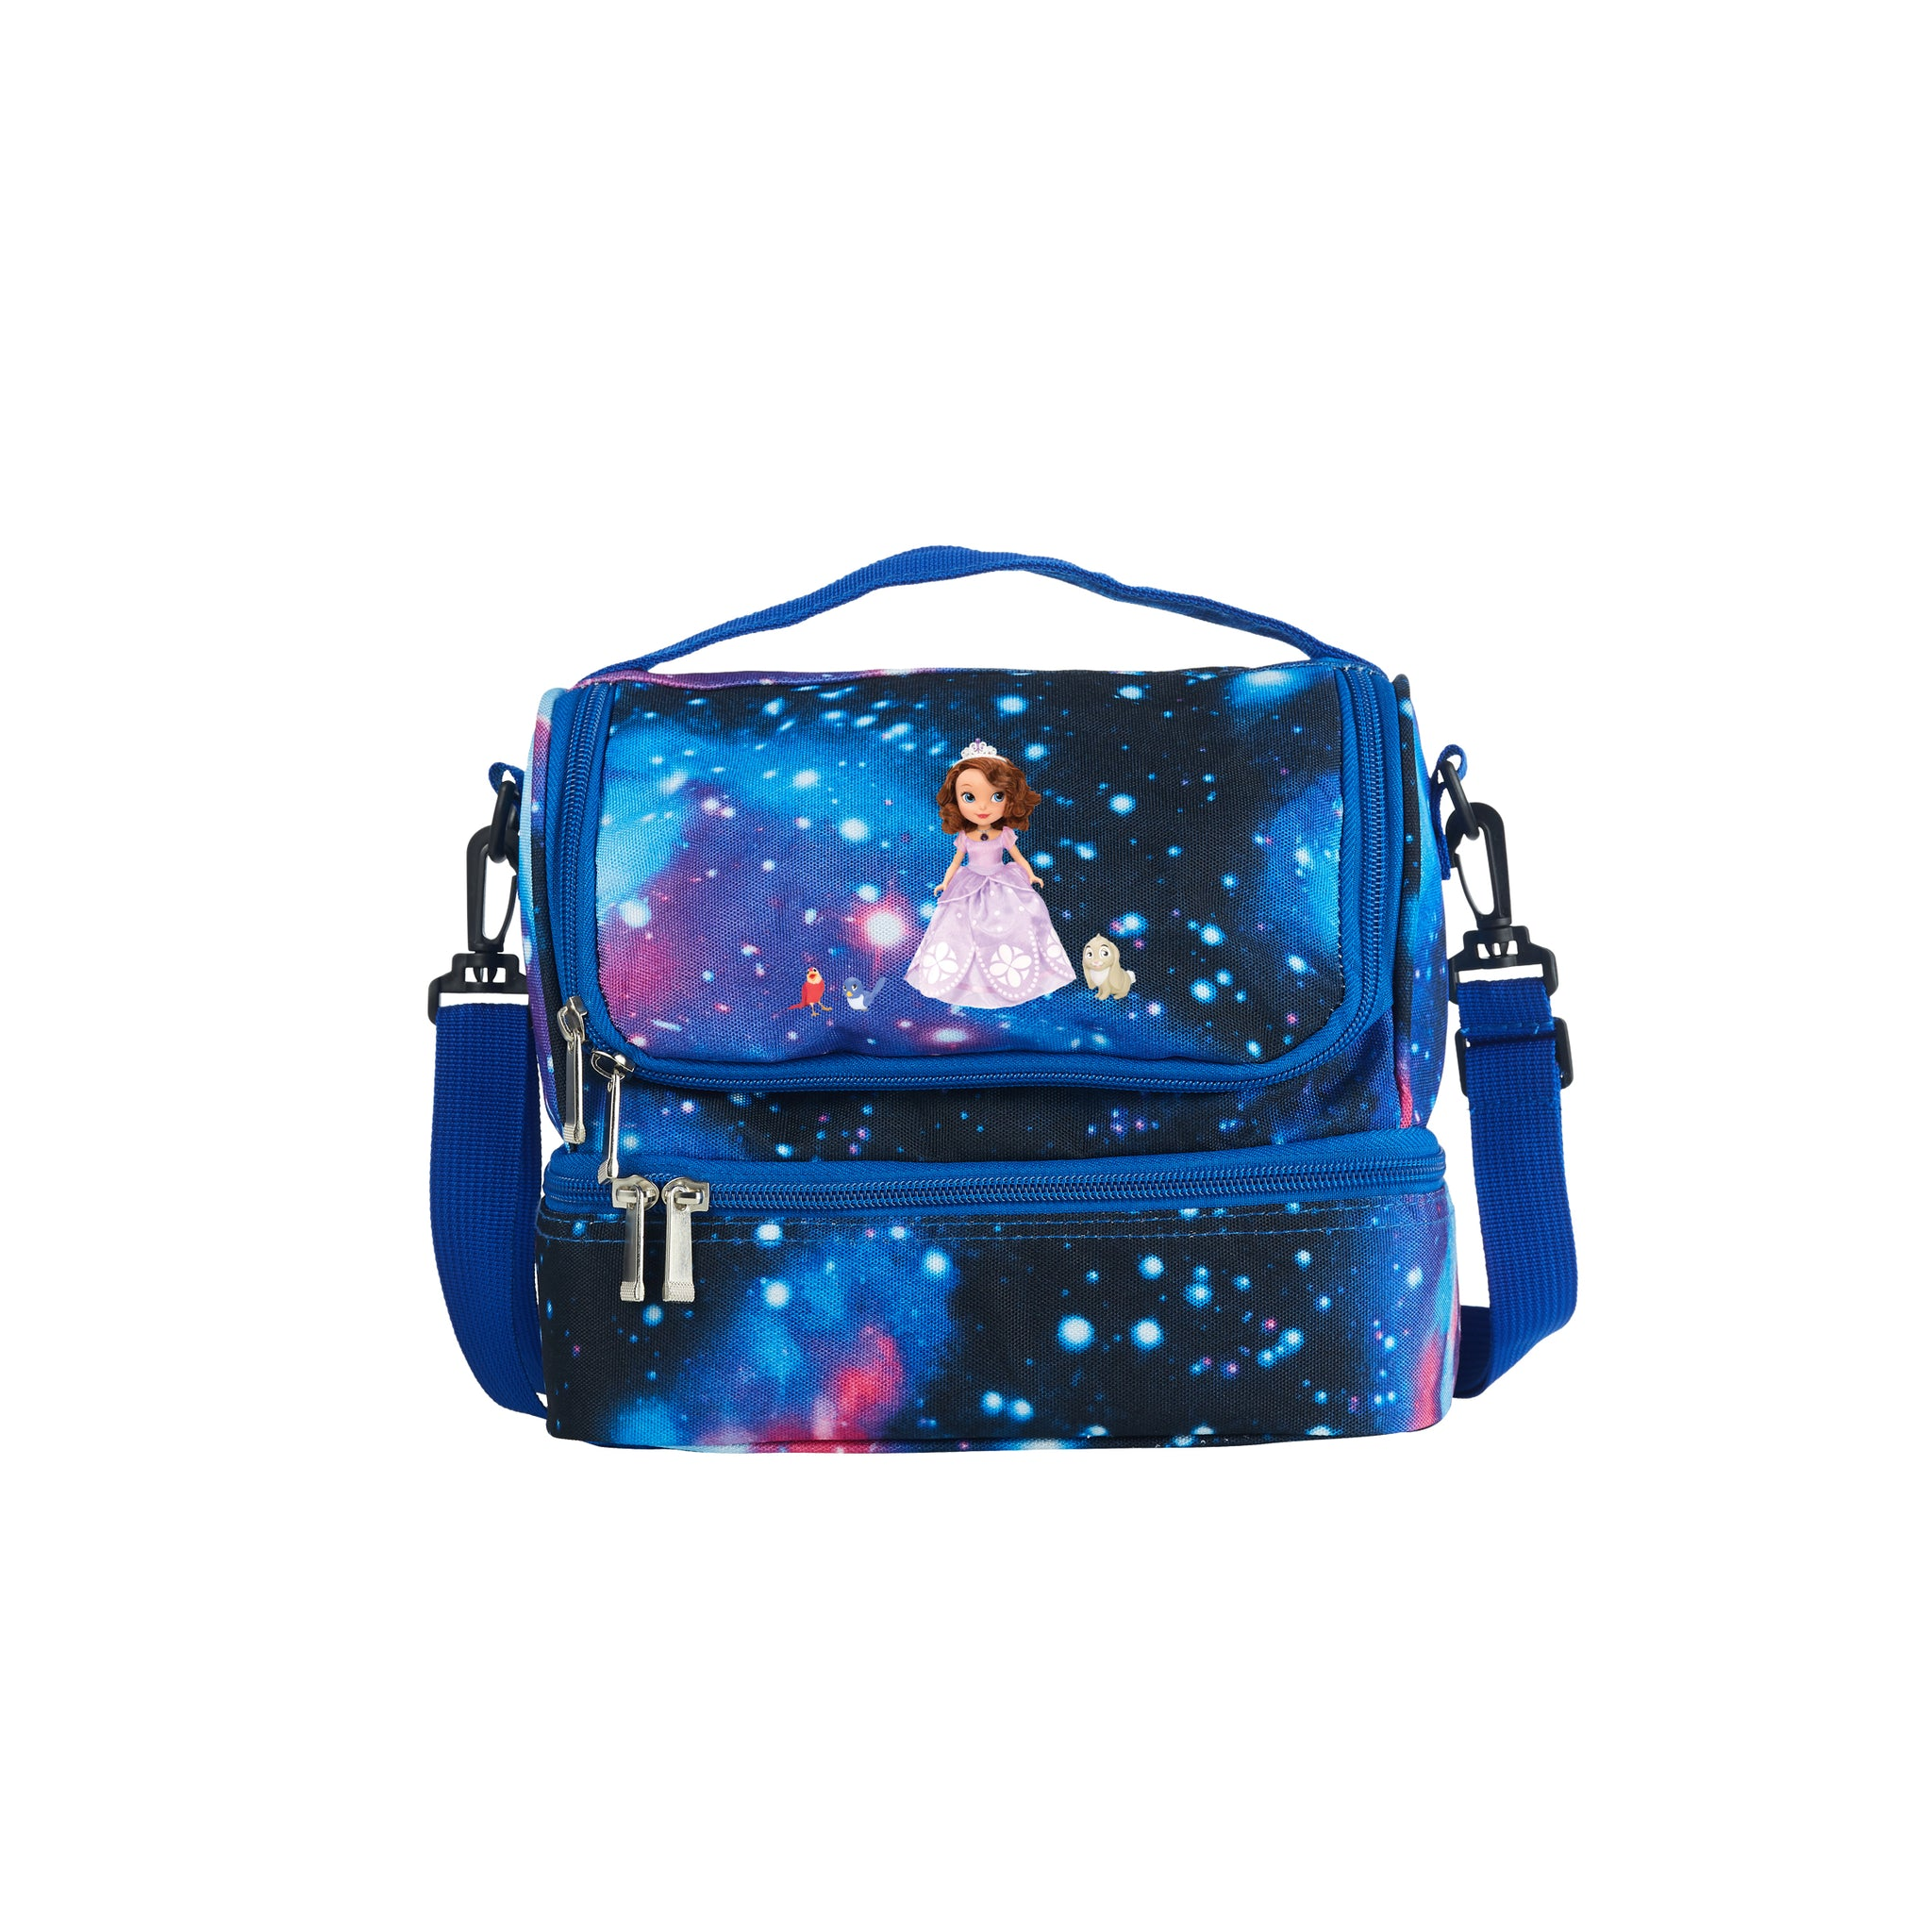 Sofia The First Series 2019 New Two Compartment Galaxy Lunch Bag